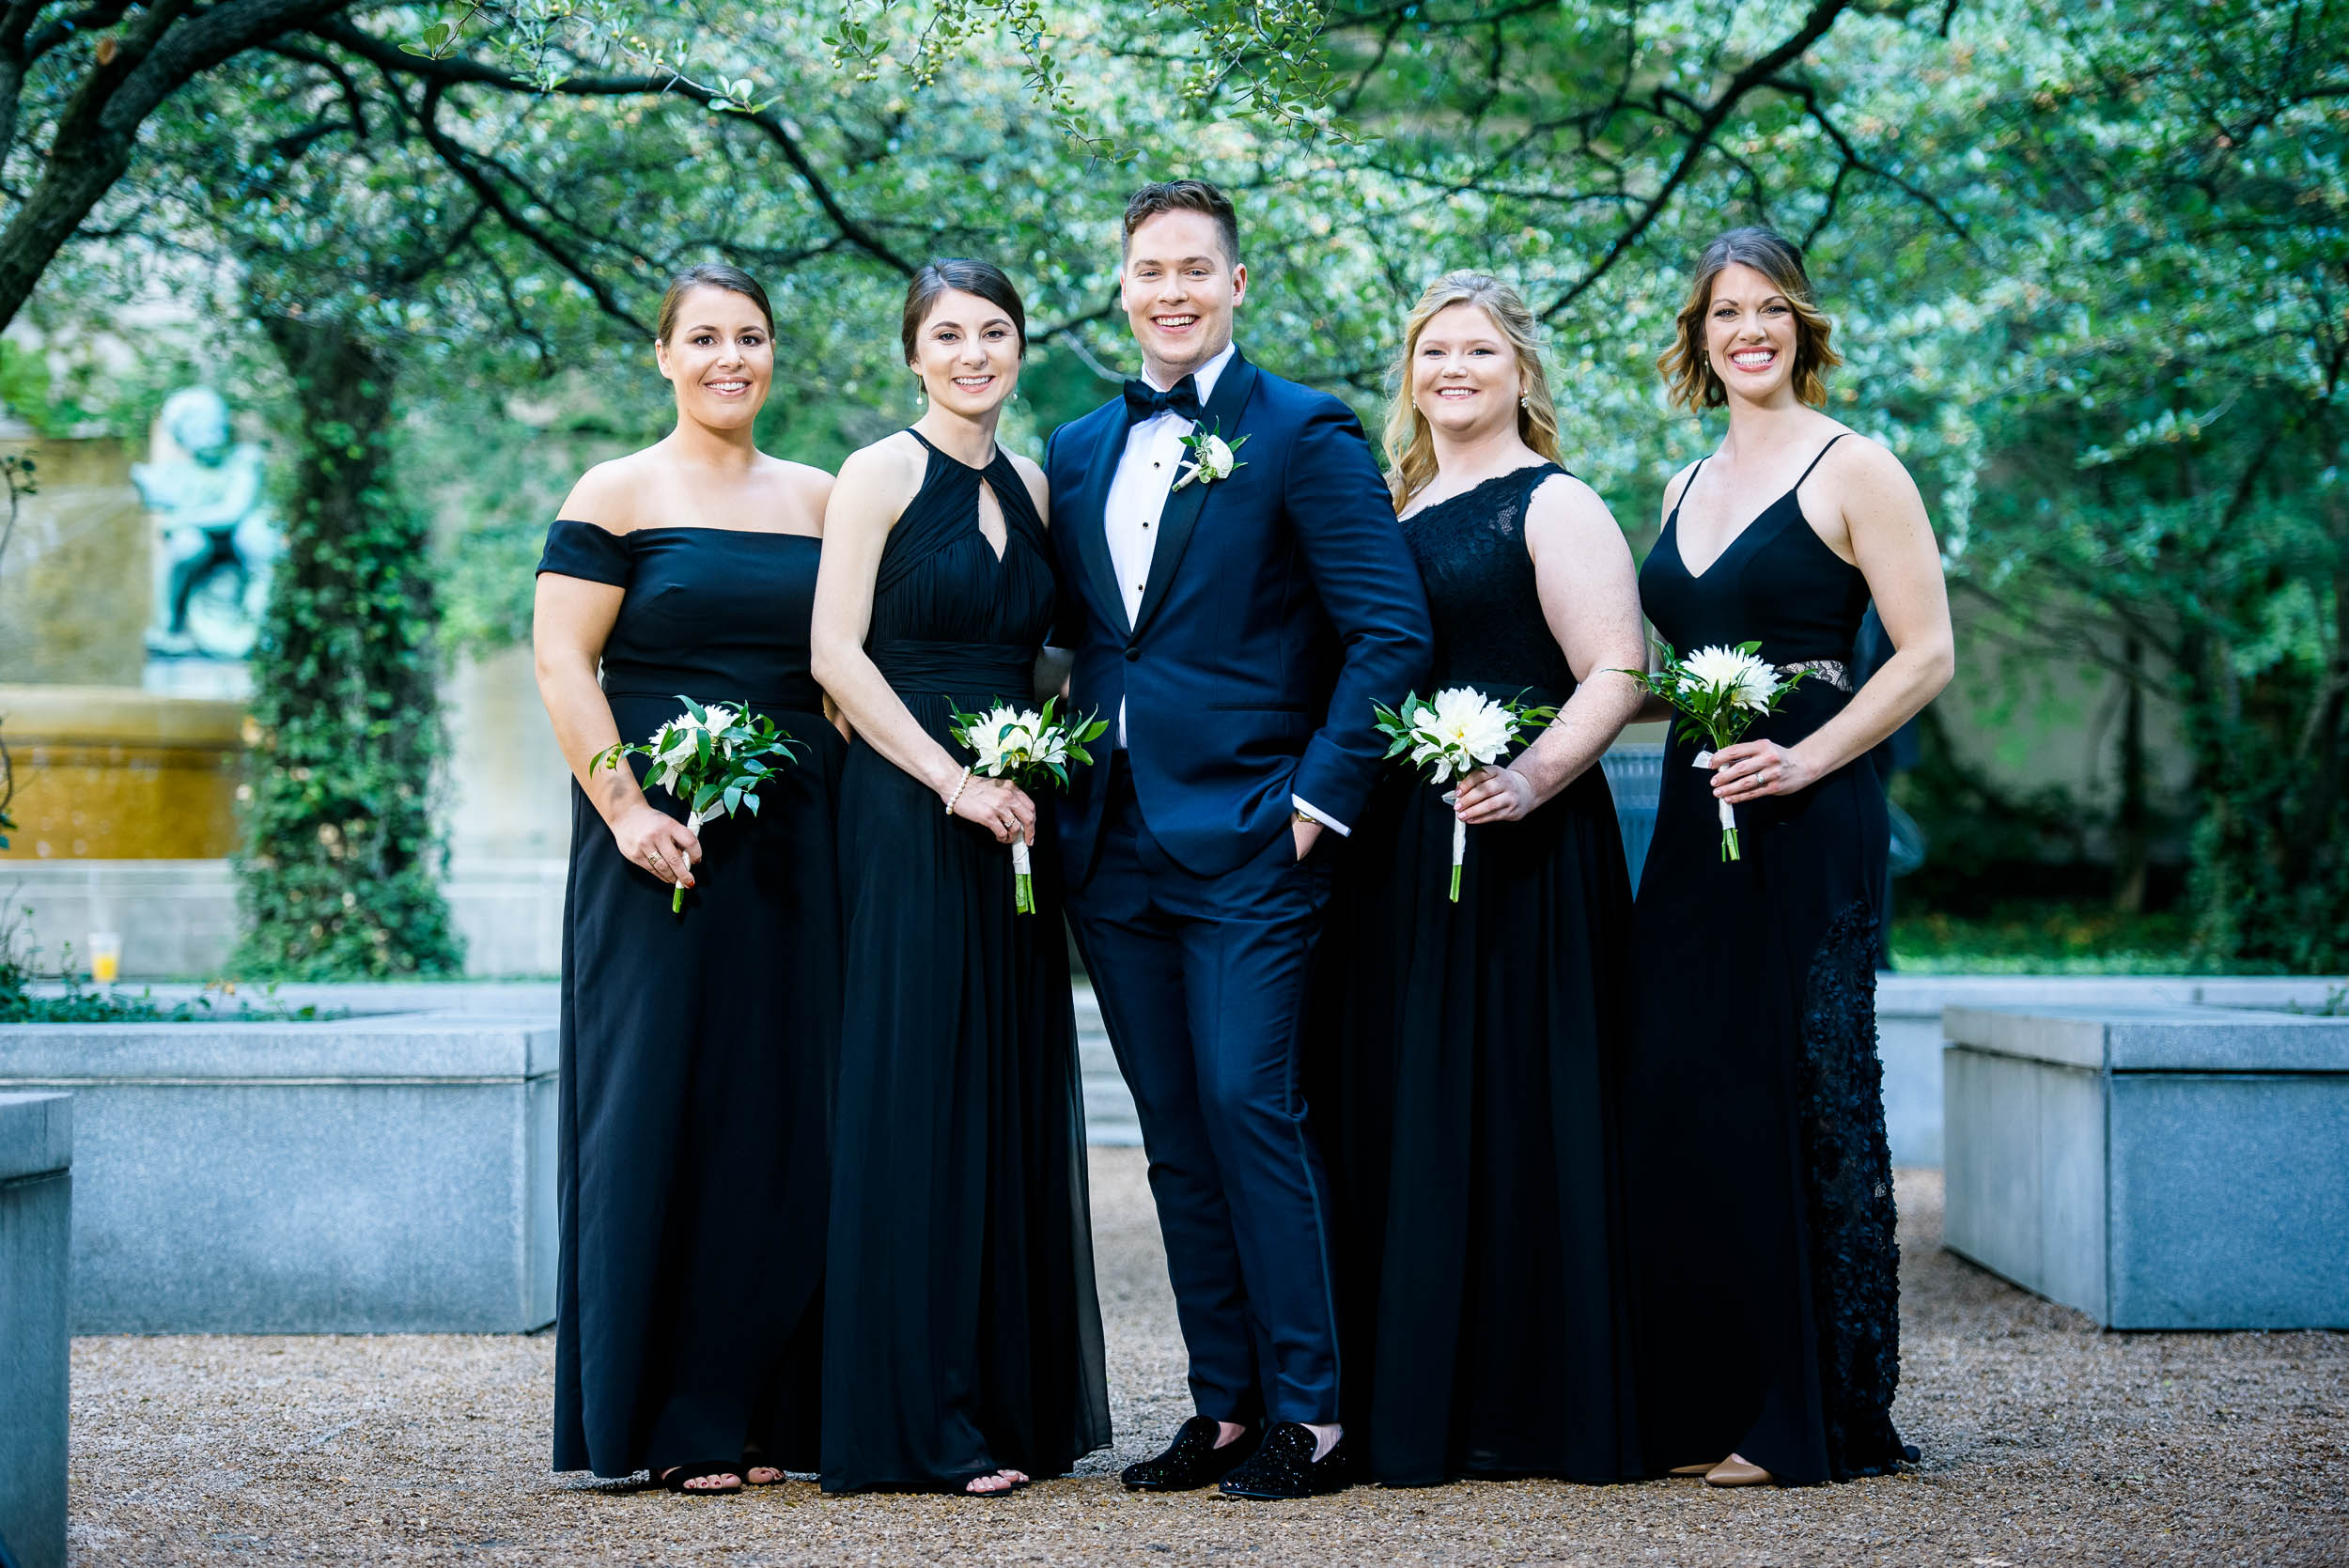 Groom posing with wedding party for luxurious fall wedding at the Chicago Symphony Center captured by J. Brown Photography. See more wedding ideas at jbrownphotography.com!